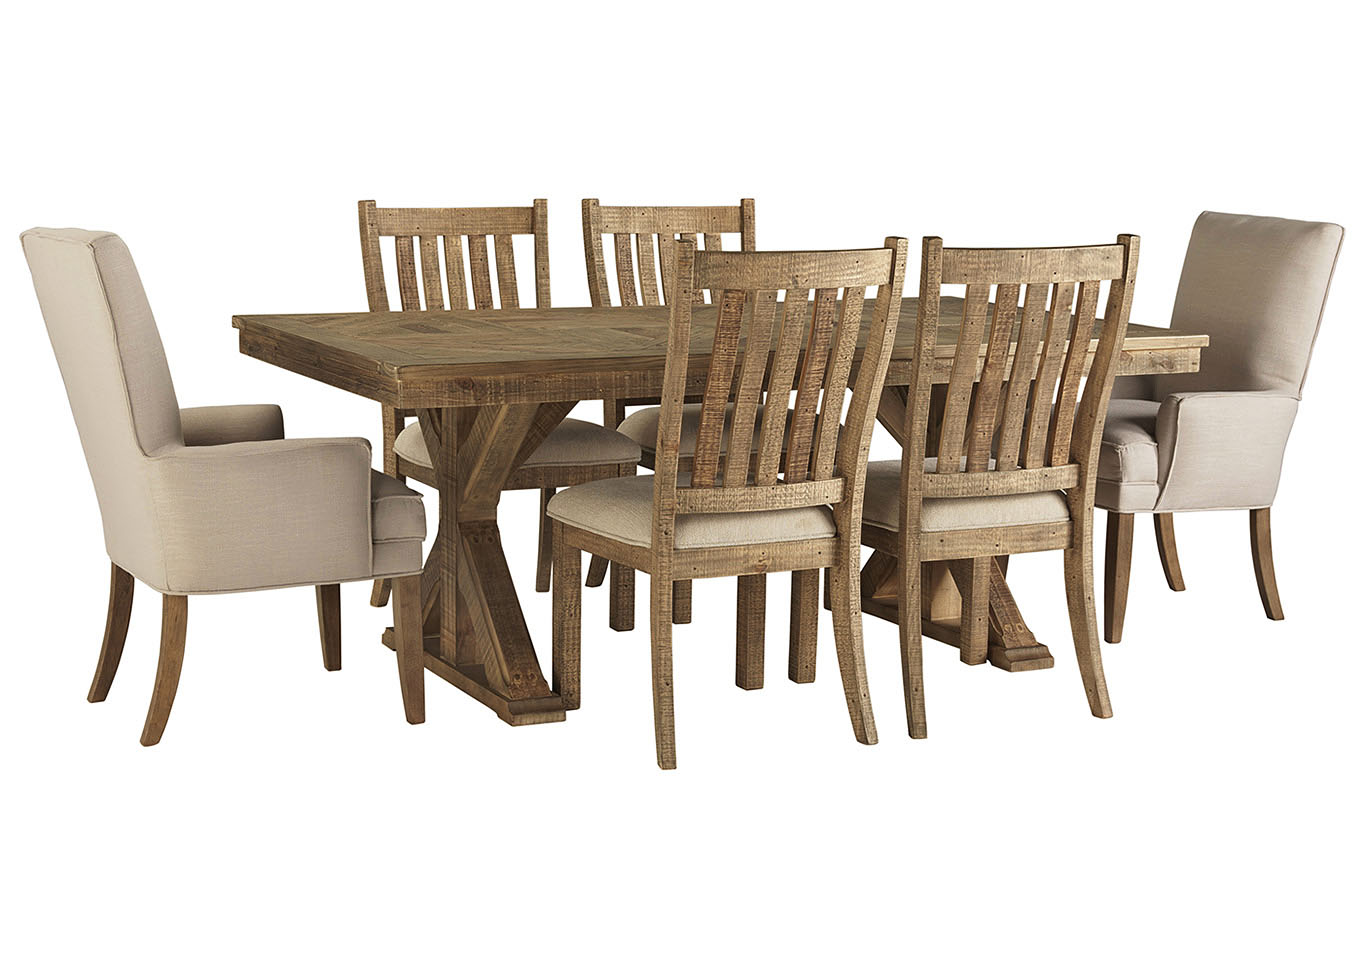 Grindleburg Light Brown Rectangular Dining Table w/4 Brown Side Chairs and 2 Beige Arm Chairs,Signature Design By Ashley